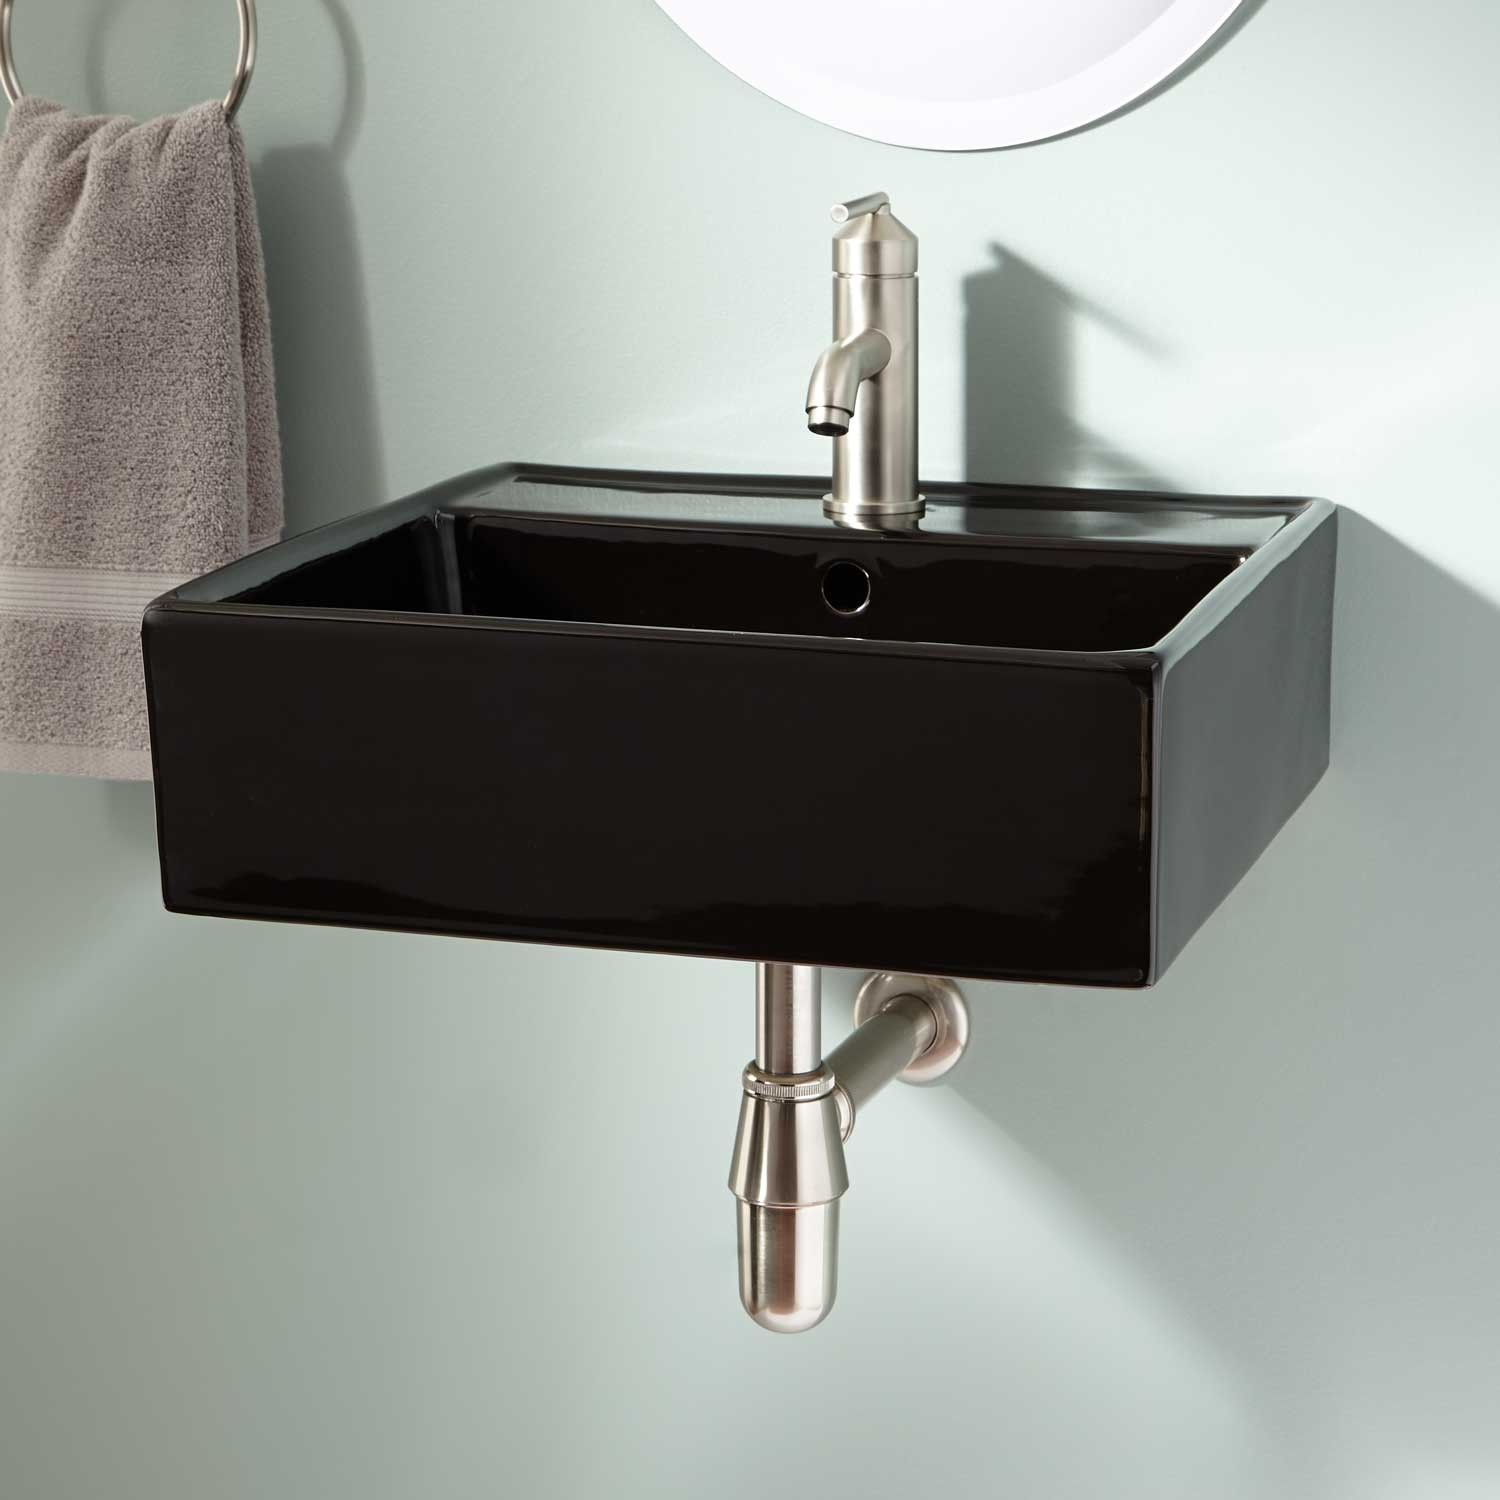 Audrie Wall Mount Bathroom Sink Wall Mount Sinks Bathroom Sinks Bathroom Wall Mounted Bathroom Sinks Sink Wall Faucet